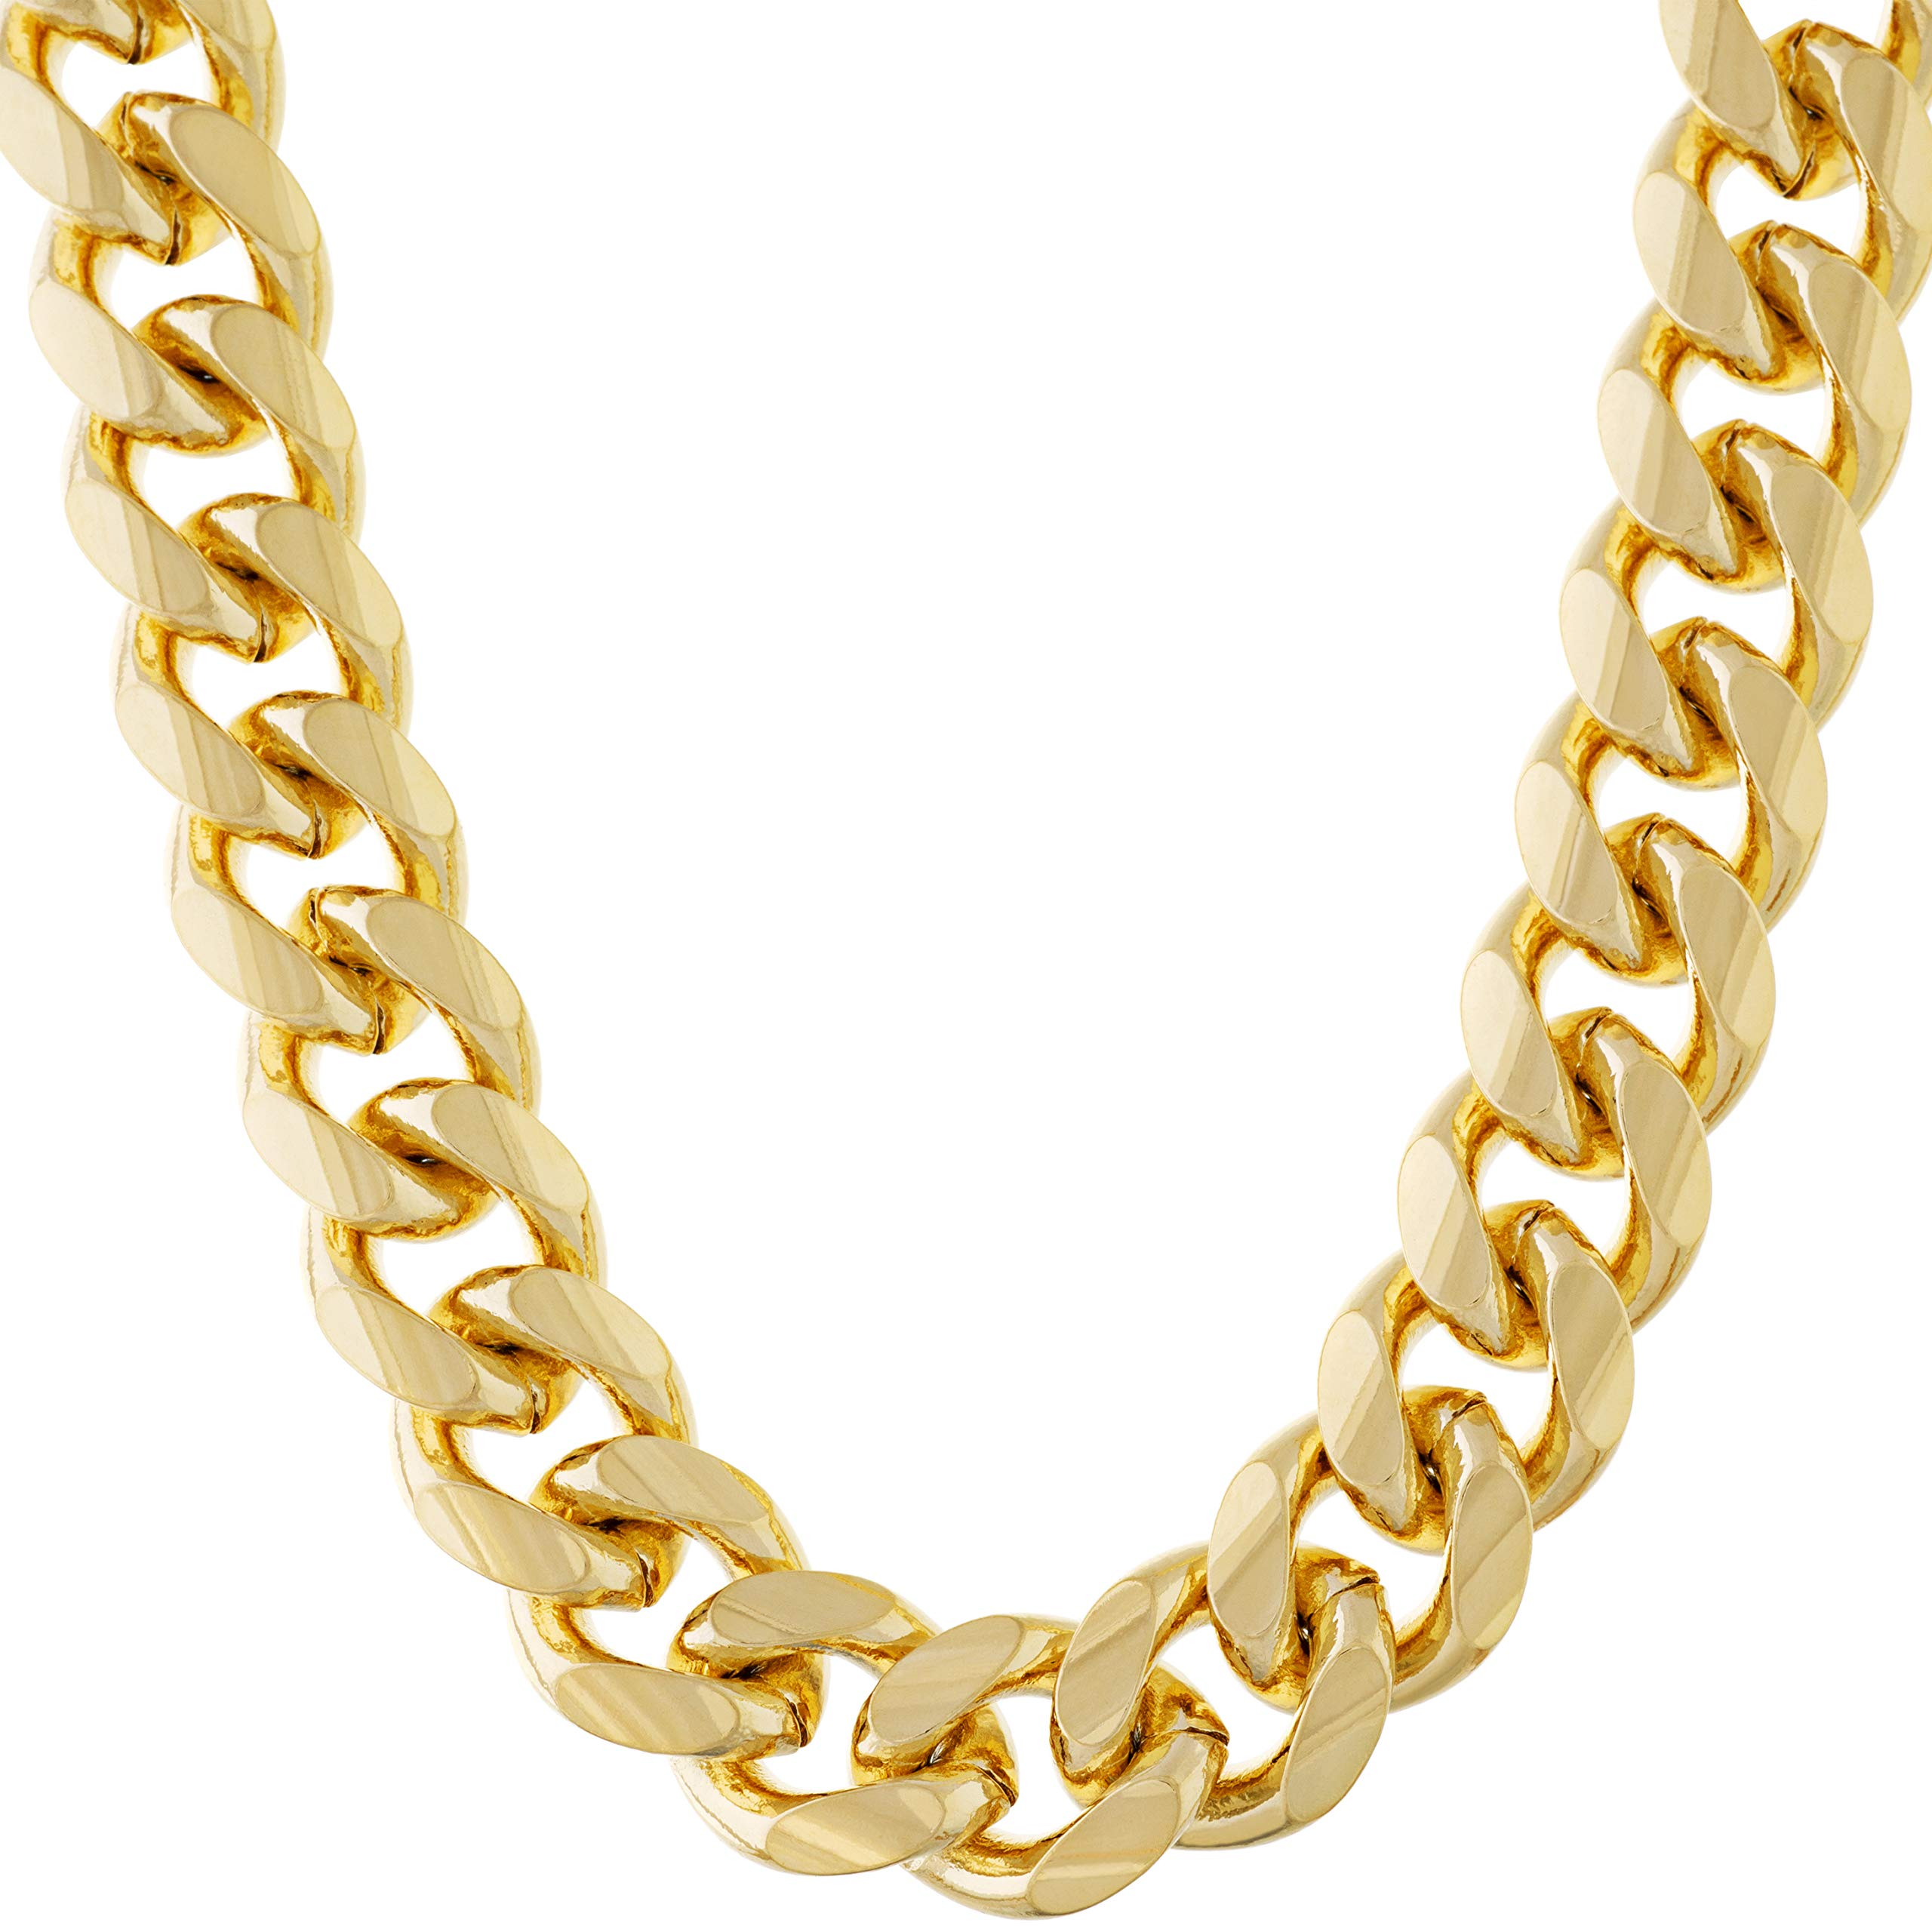 11mm Miami Curb Cuban Link Chain Necklace 24k Real Gold Plated